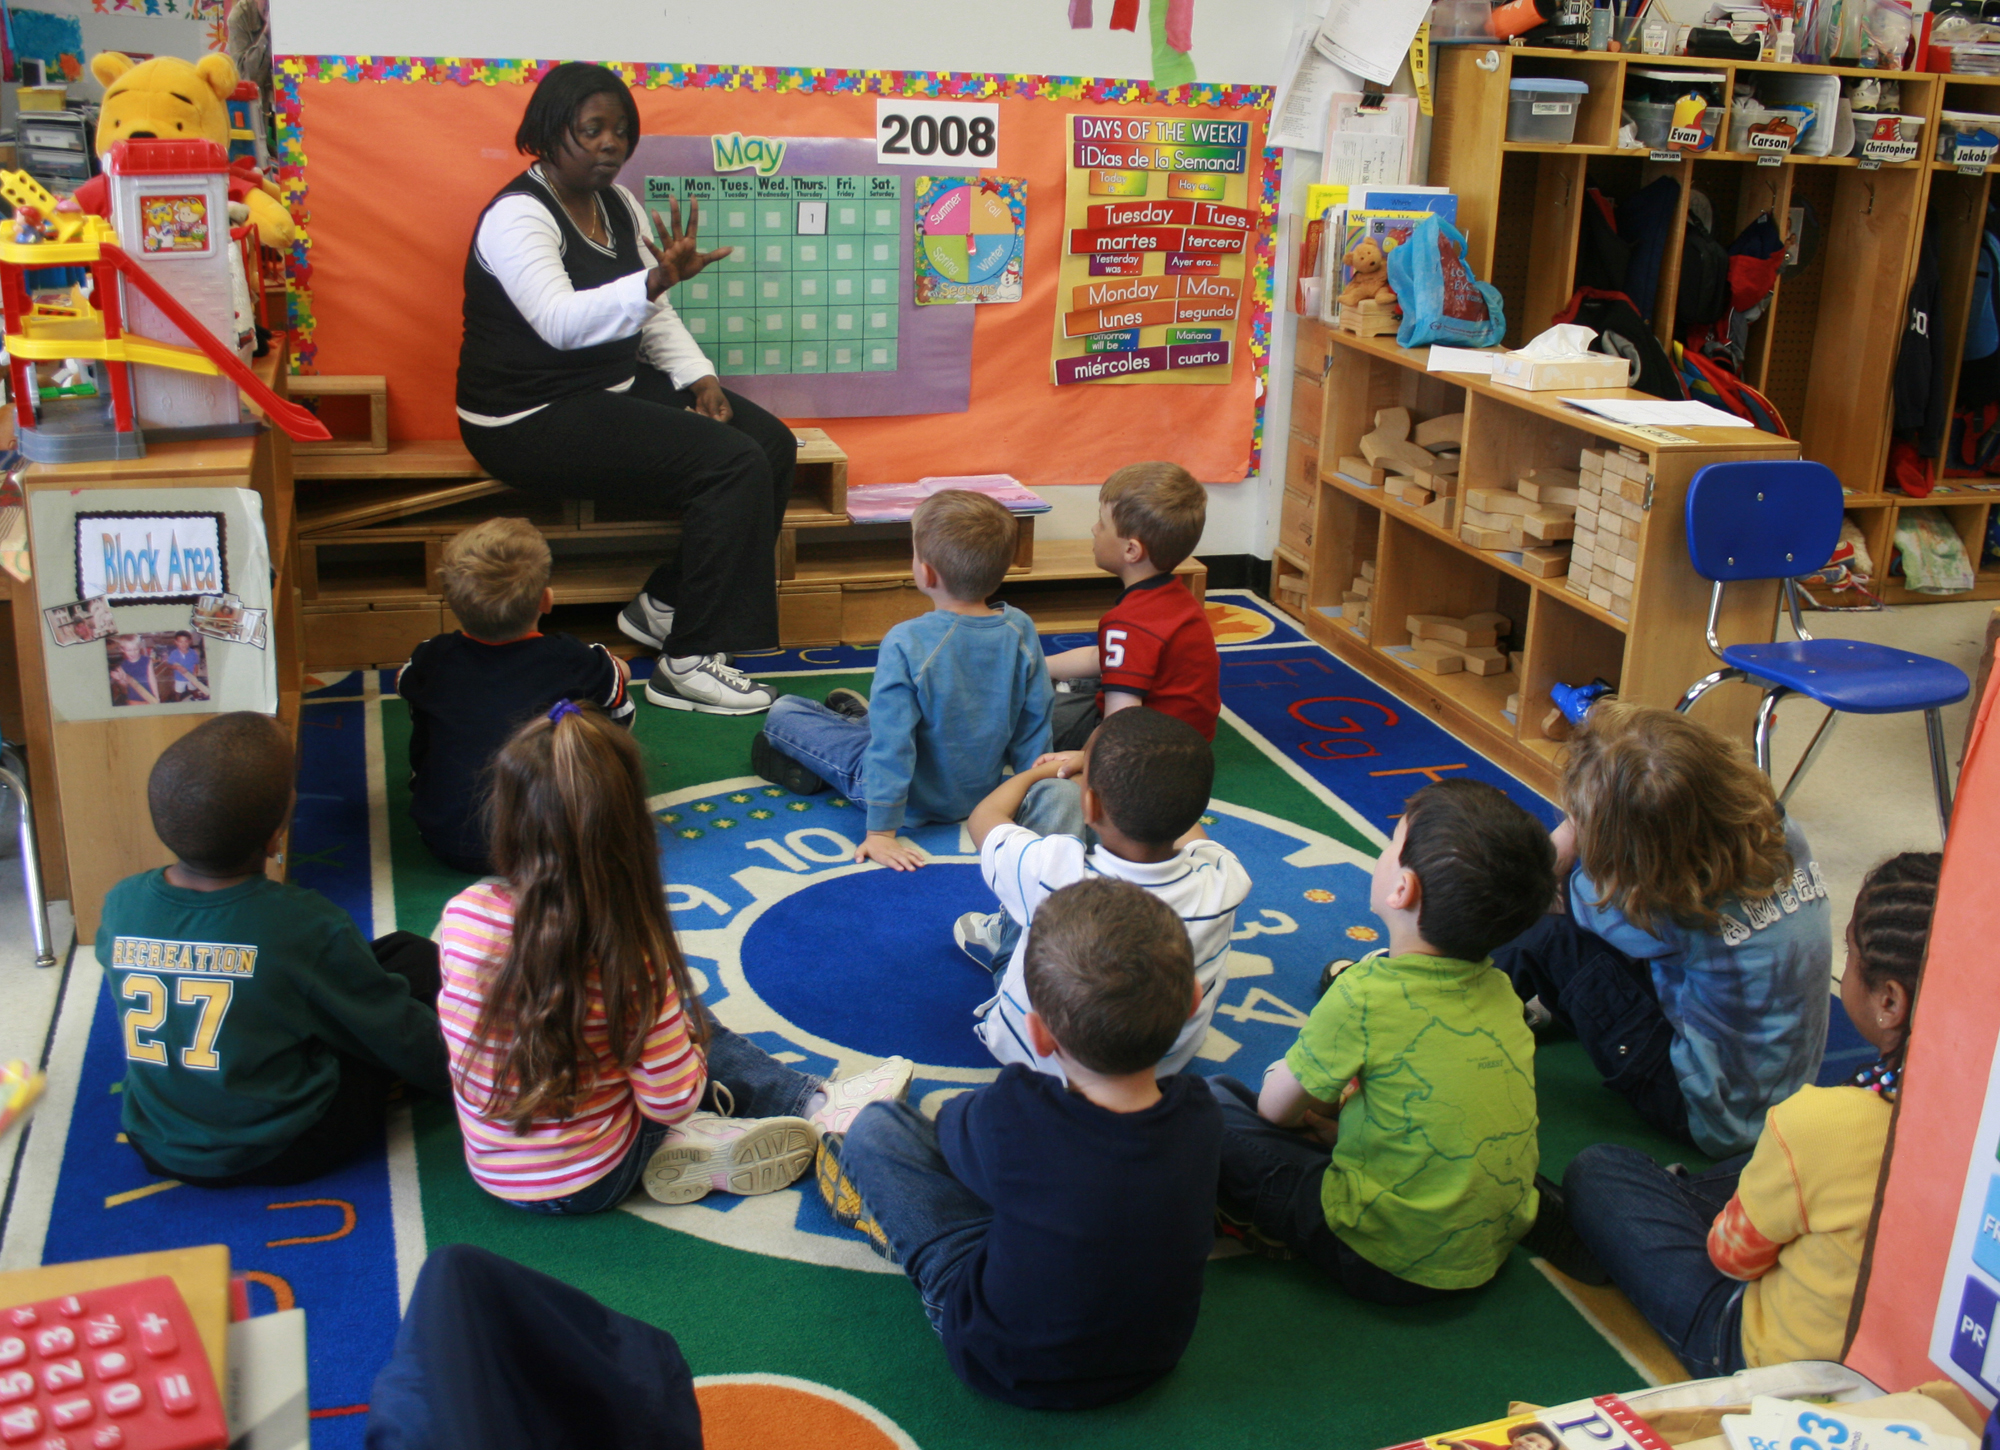 picture of kids in classroom, more affordable course materials